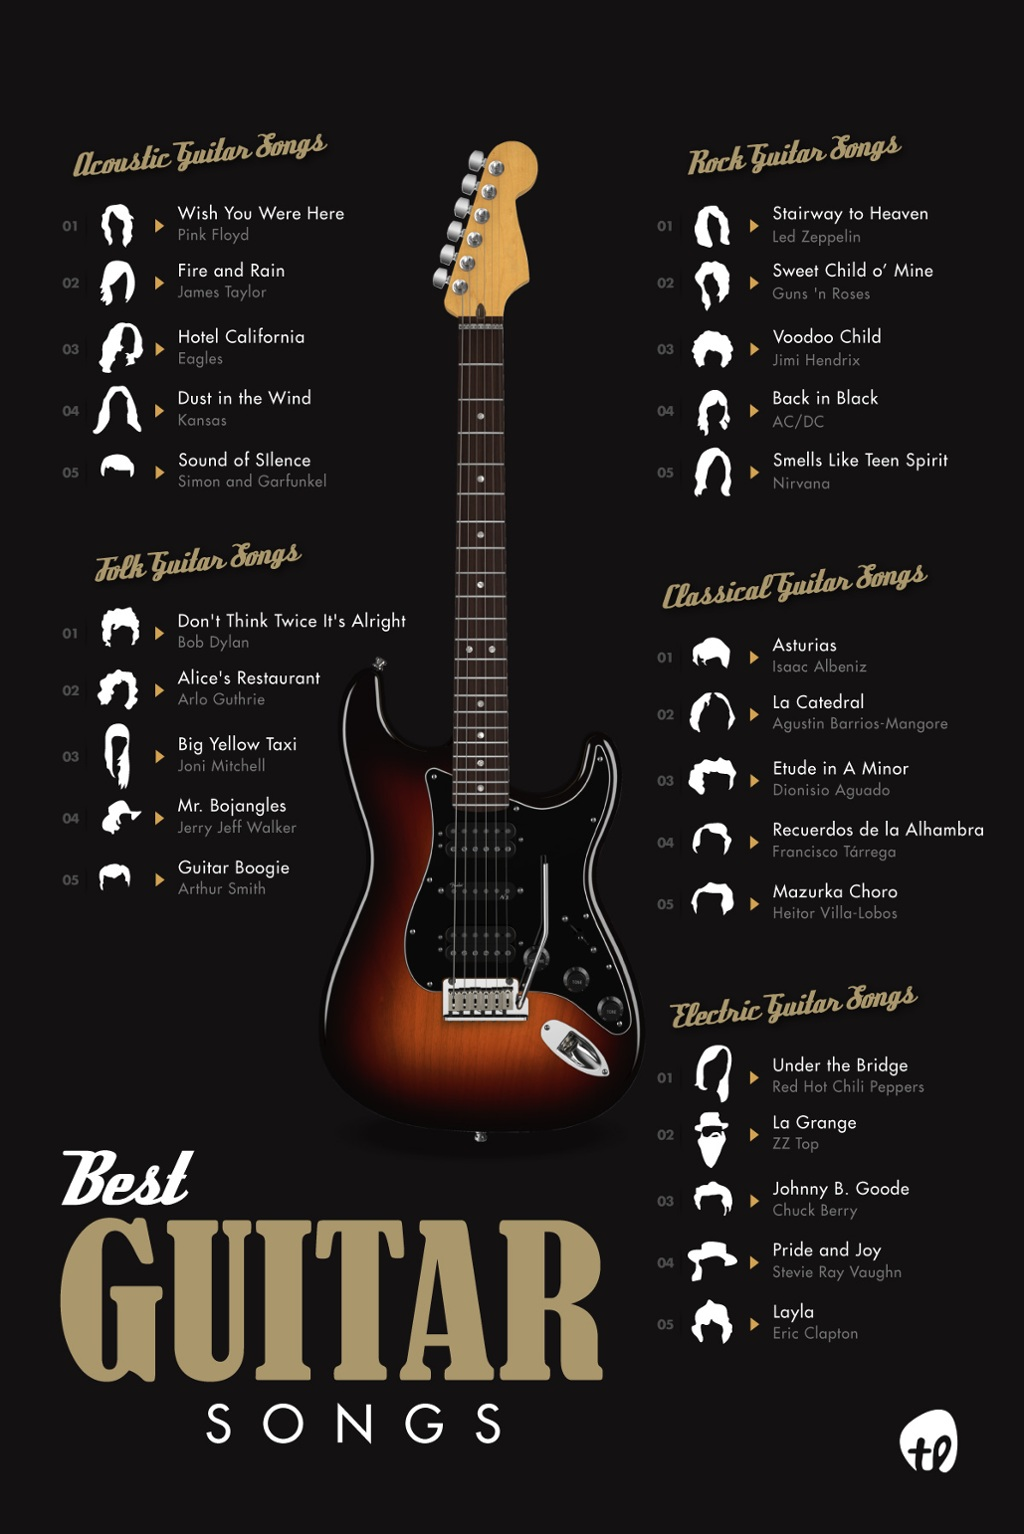 the 50 best guitar